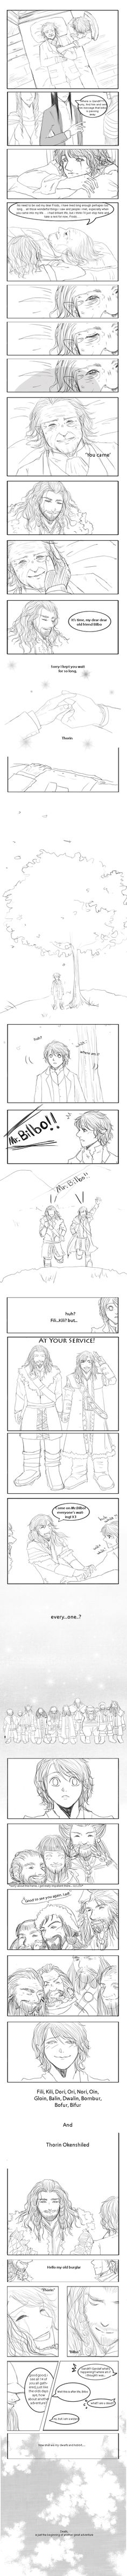 : the beginning of another adventure by ~youyanwuzhu on deviantART T-T